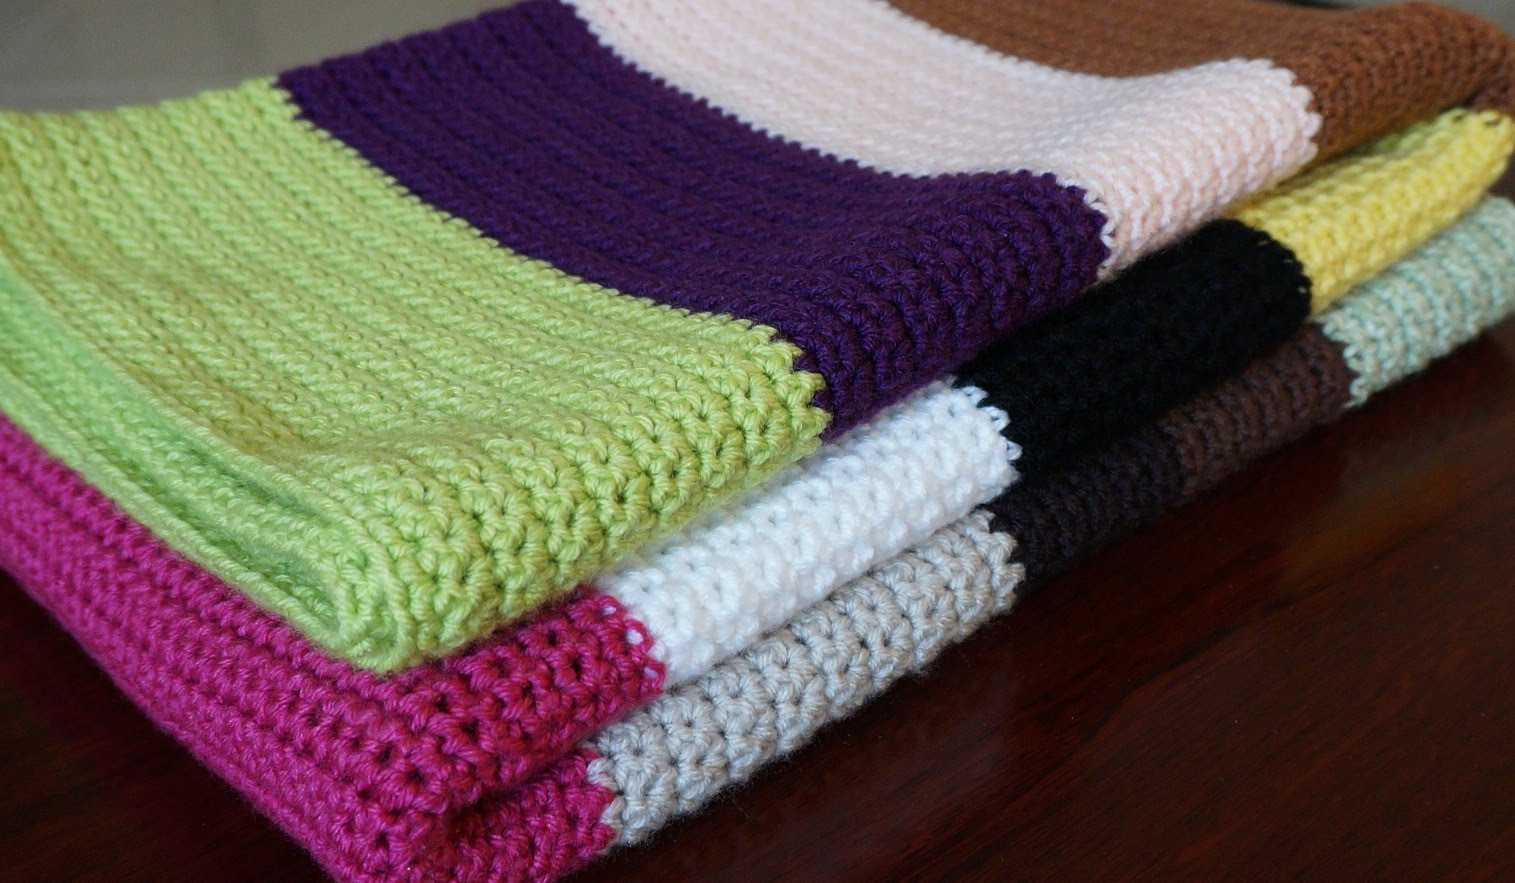 Free Crochet Blanket Patterns for Beginners Awesome [video Tutorial] Really Simple Single Crochet Baby Blanket Of Great 50 Pics Free Crochet Blanket Patterns for Beginners